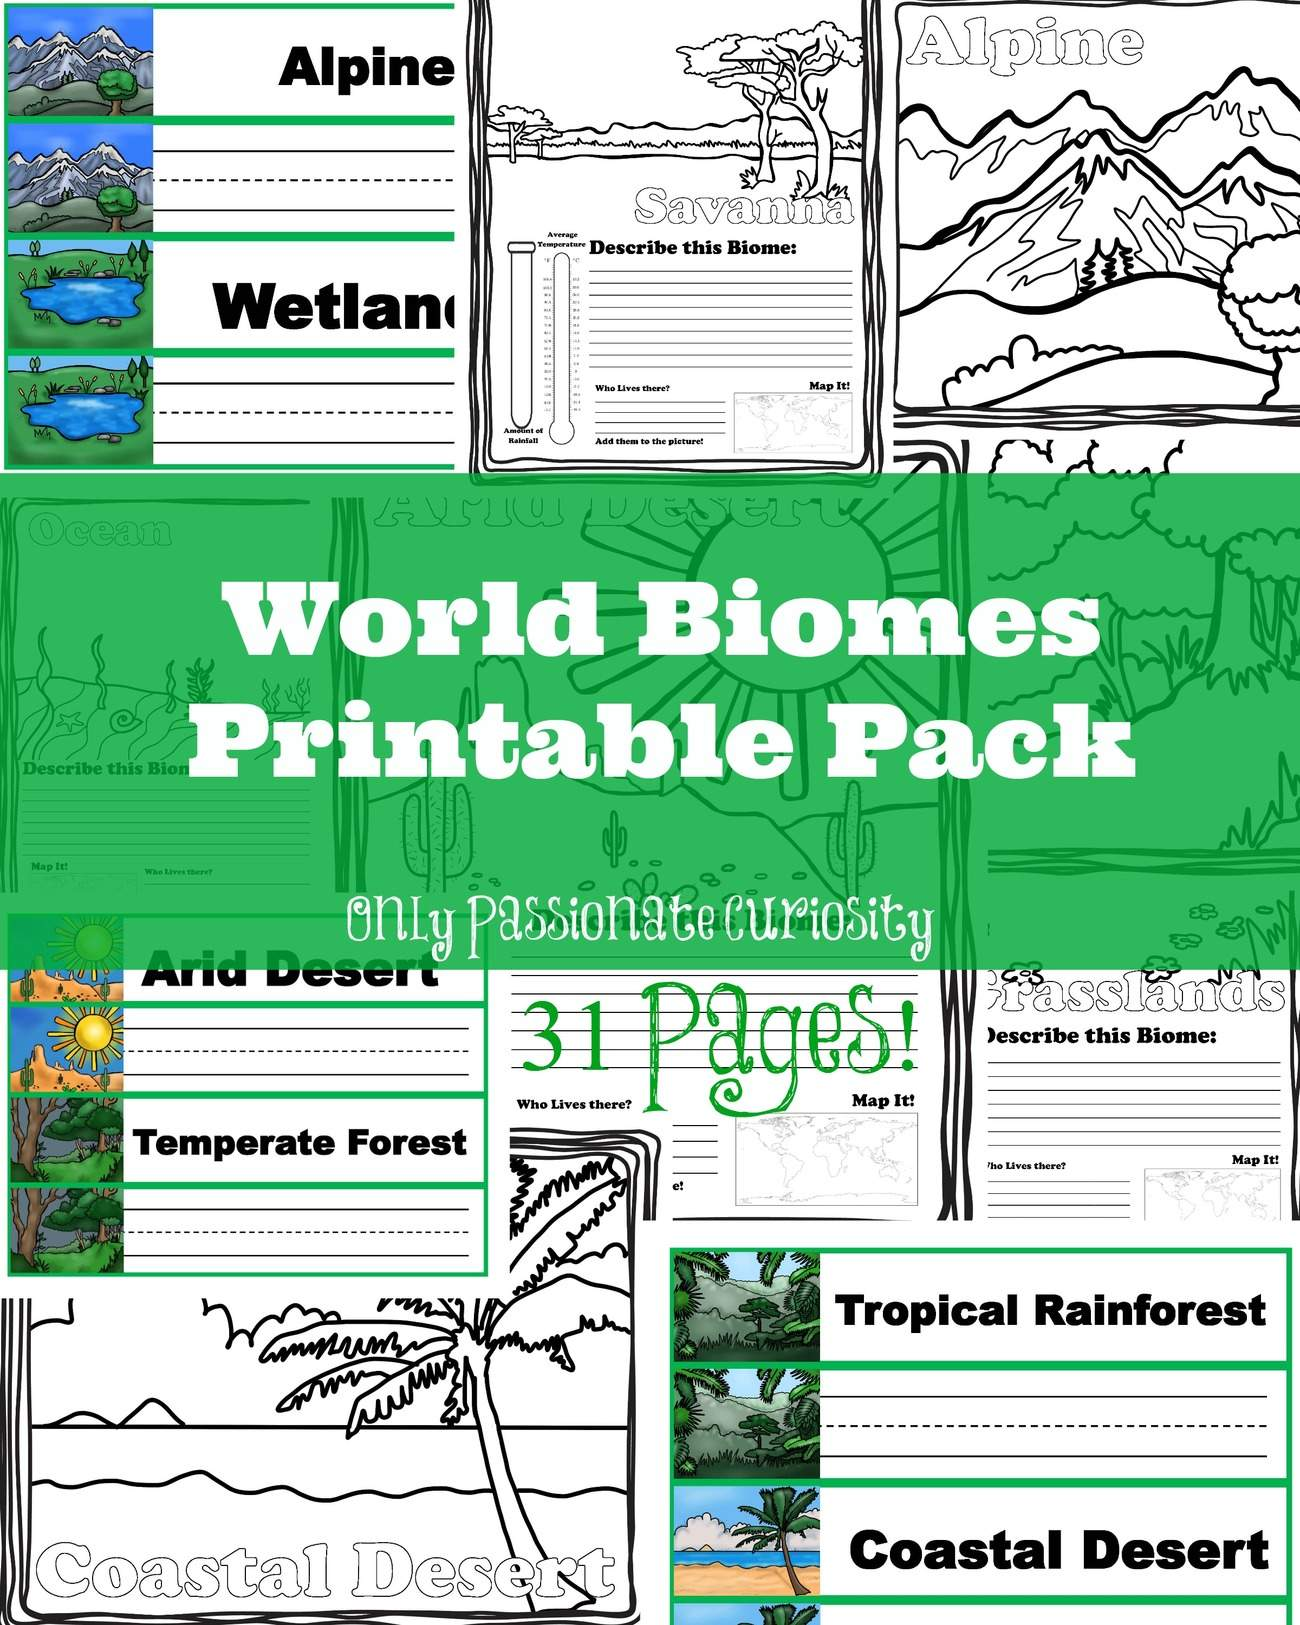 Learning about world biomes only passionate curiosity world biomes printable pack from only passionate curiosity gumiabroncs Images